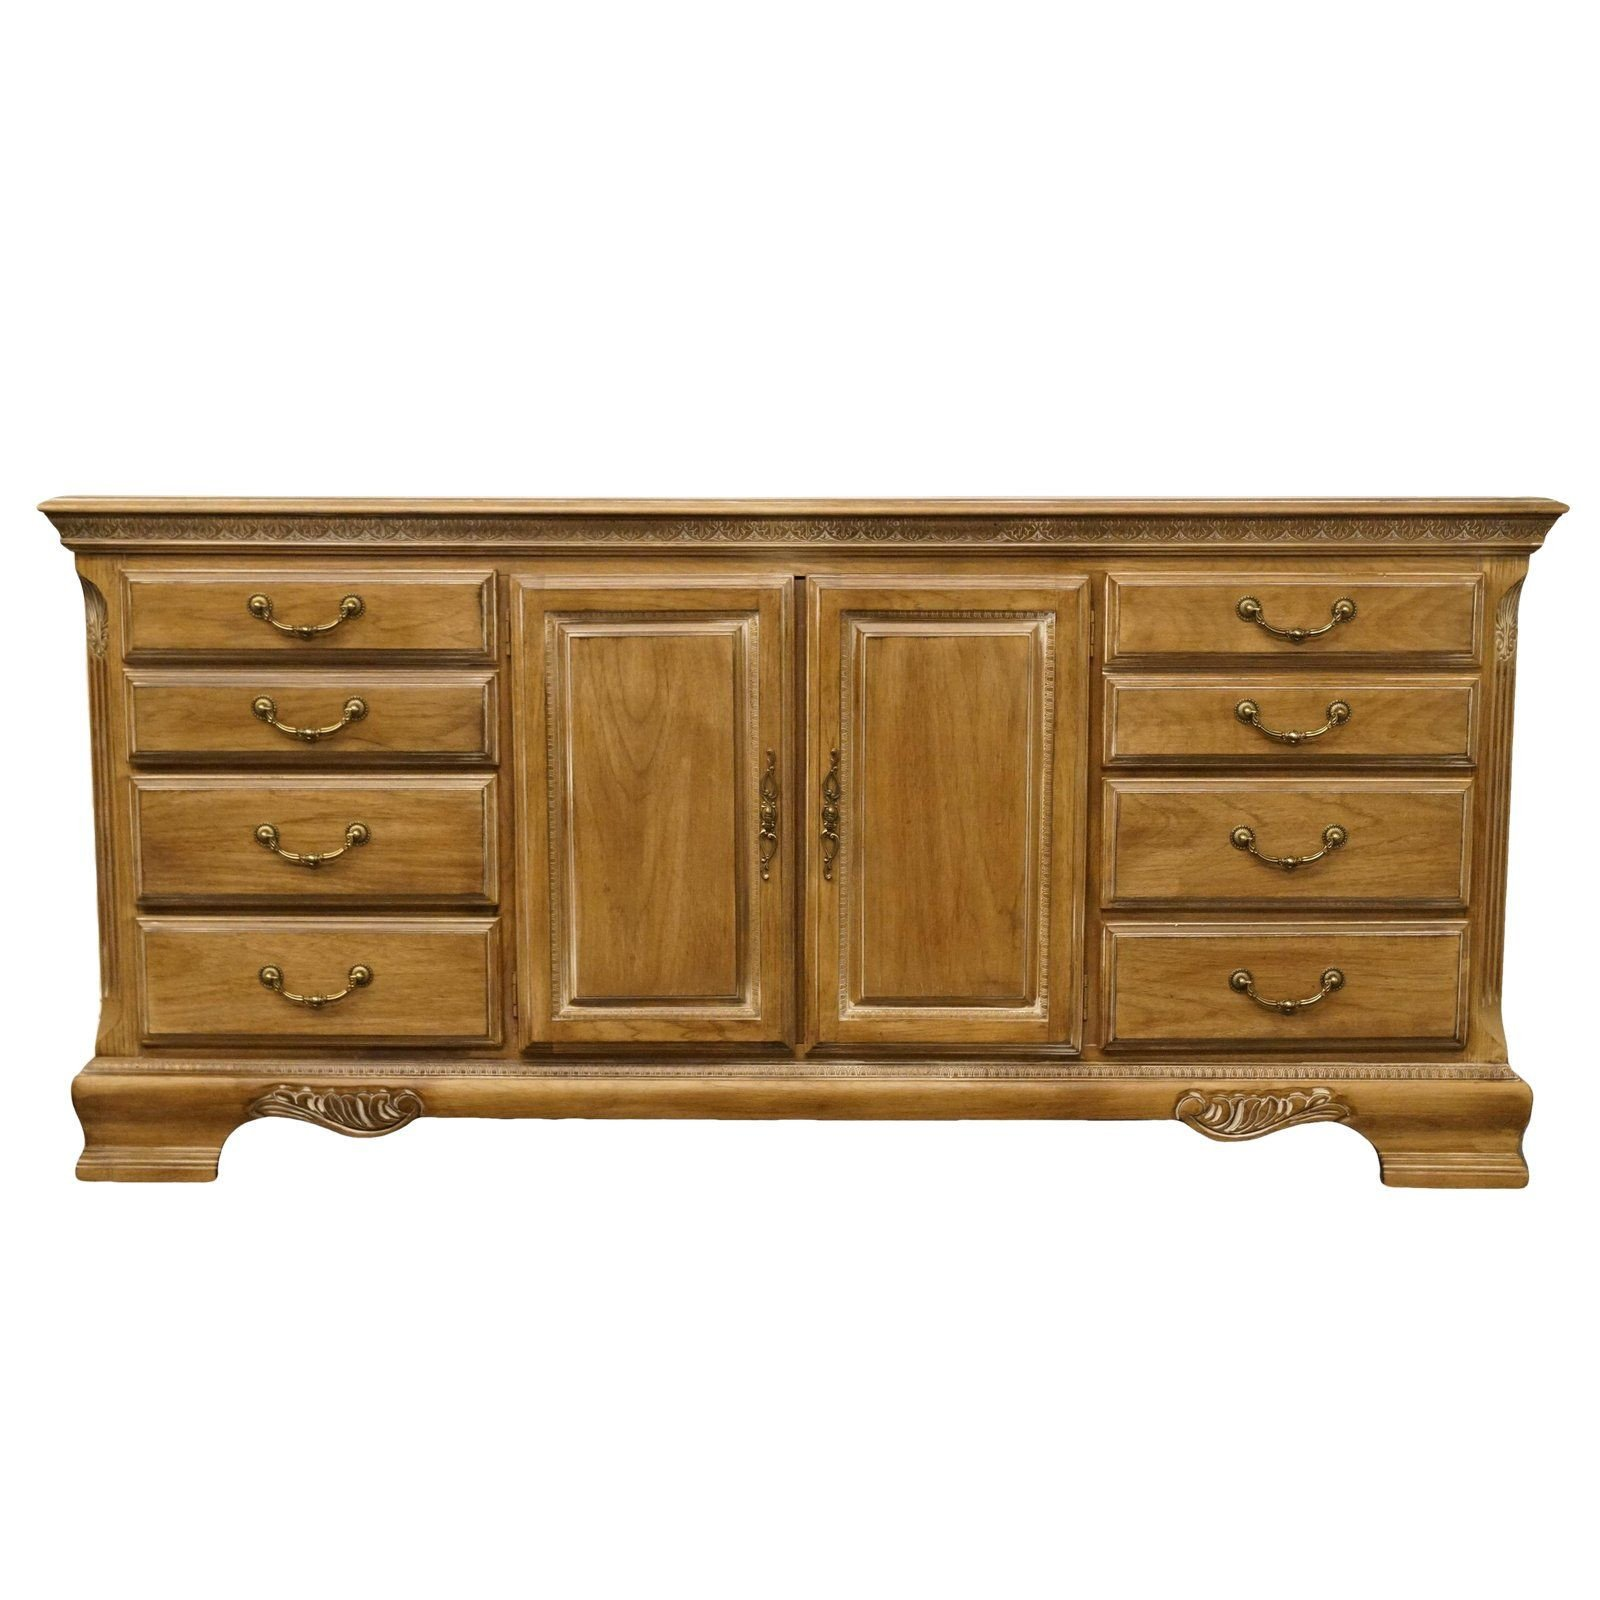 Used Lexington Bedroom Furniture Fresh 20th Century Traditional Lexington Furniture Camden Hall